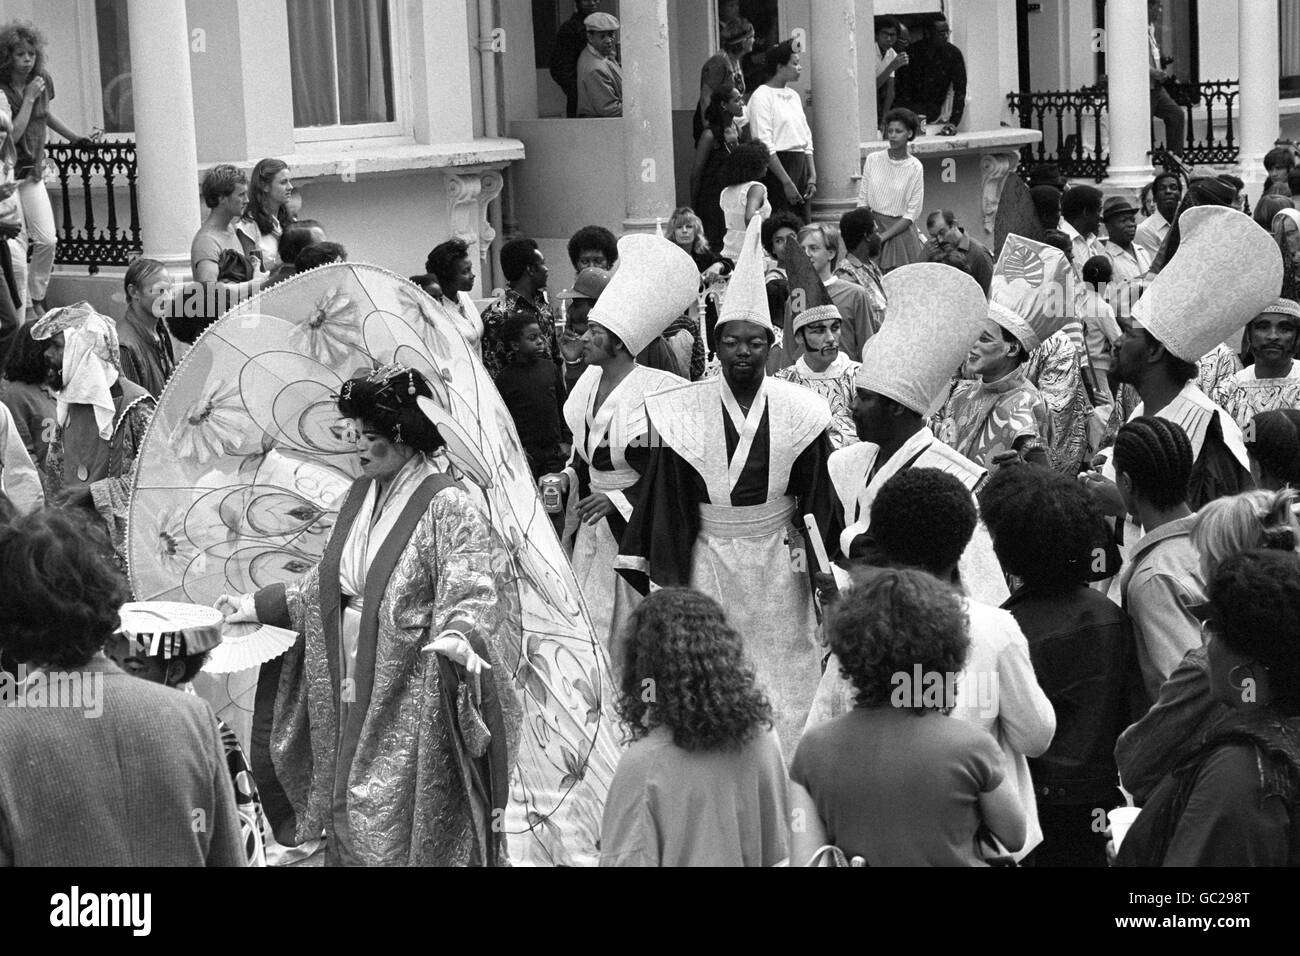 Festivals and Carnivals - The Notting Hill Carnival - London - Stock Image